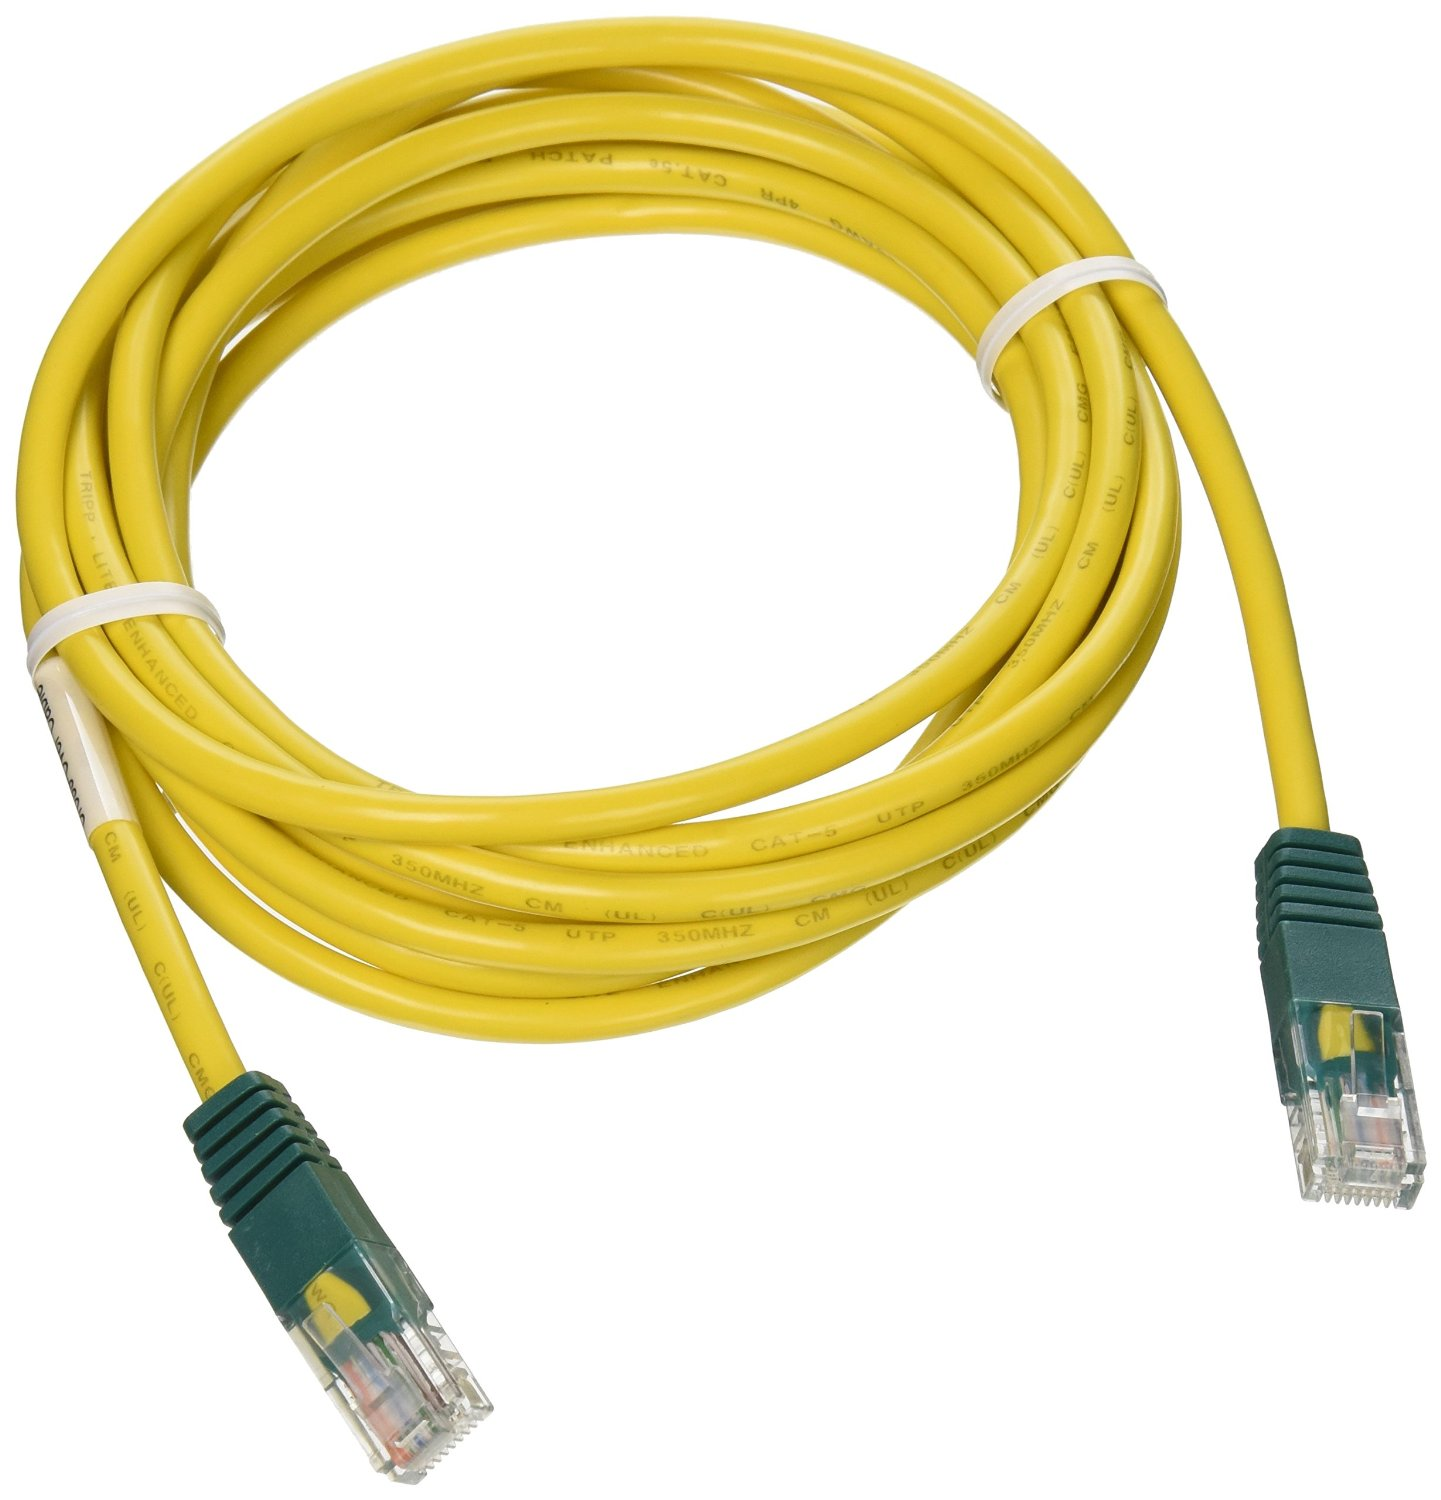 Tripp Lite 10ft Cat5e 350MHz Molded Cross-over Patch Cable (RJ45 M/M) - Yellow